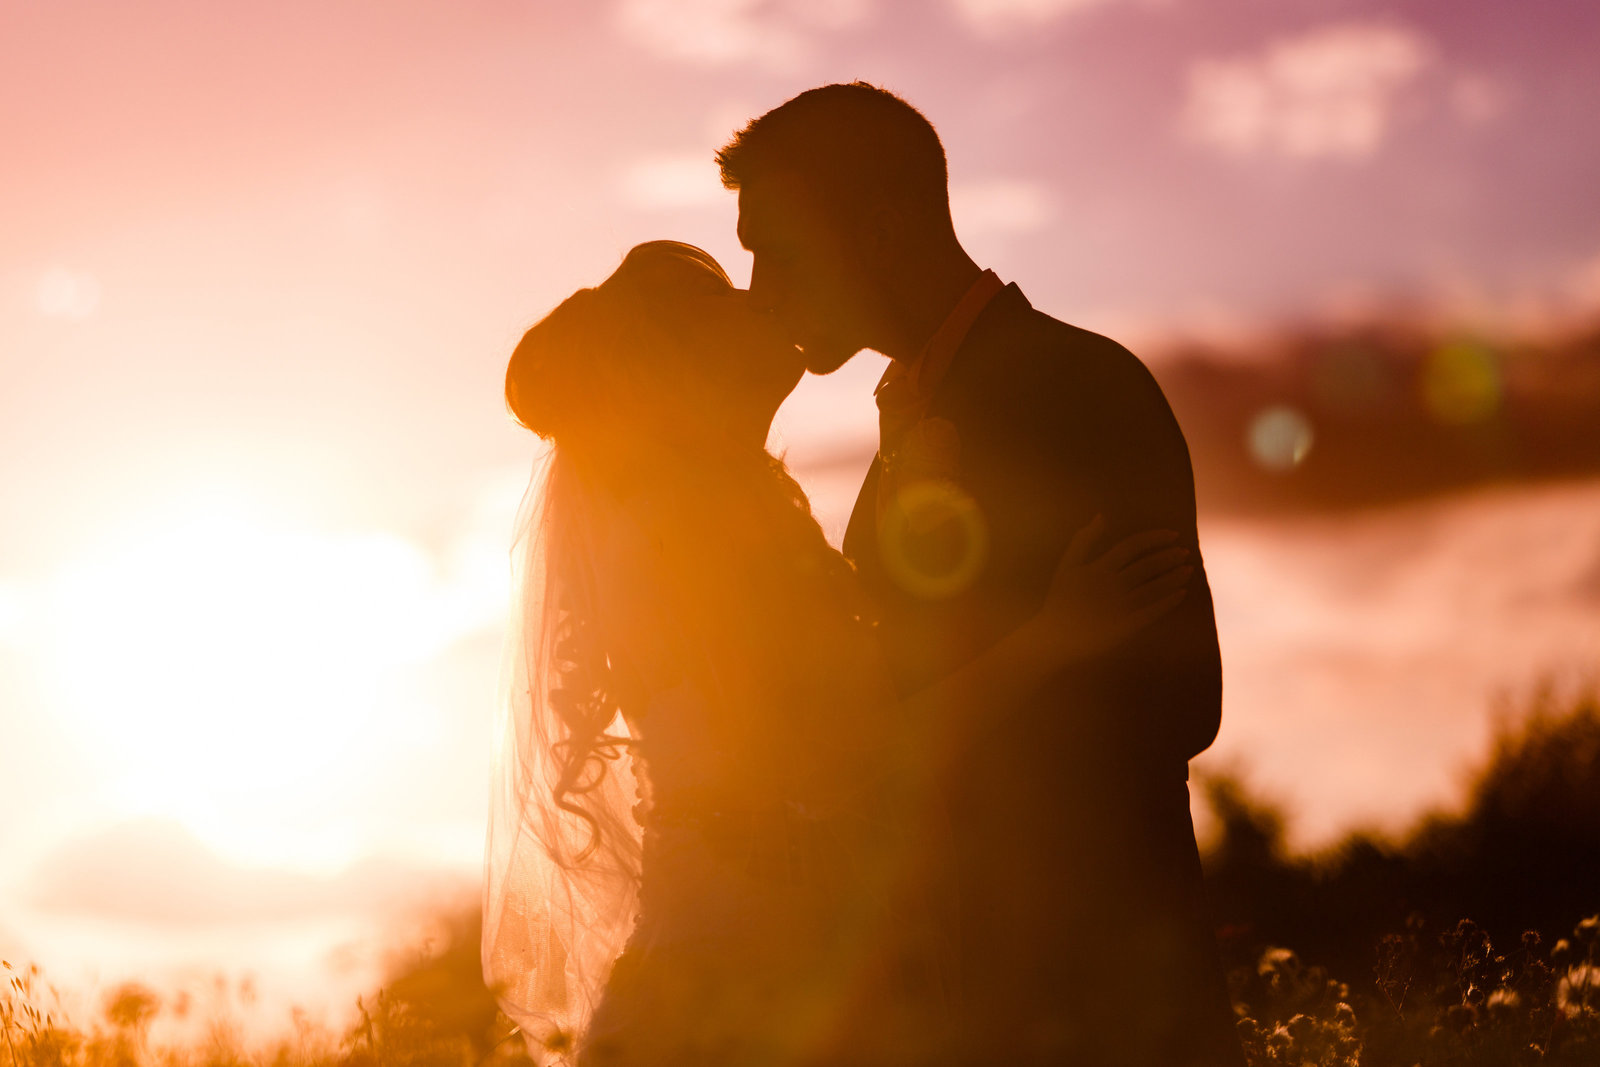 A beautiful silhouette of the bride and groom during romatic evening couple portraits at twilight, showing the stunning pink sunset set with sun flare in the fields taken by Adorlee at Southend Barns wedding venue.